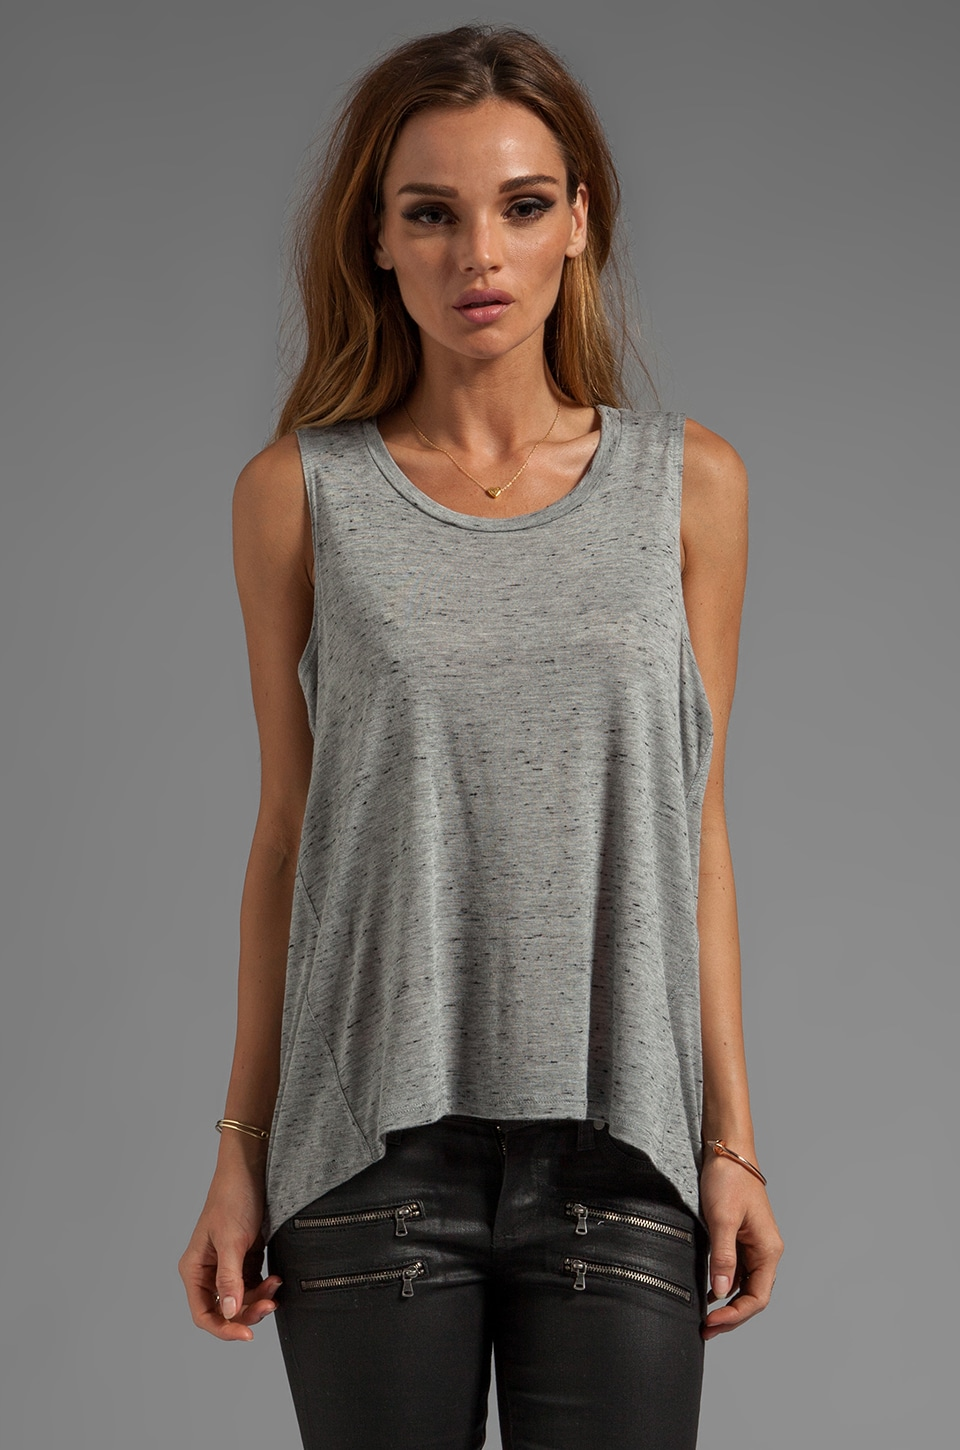 AG Adriano Goldschmied Hi-Lo Tank in Heather Grey